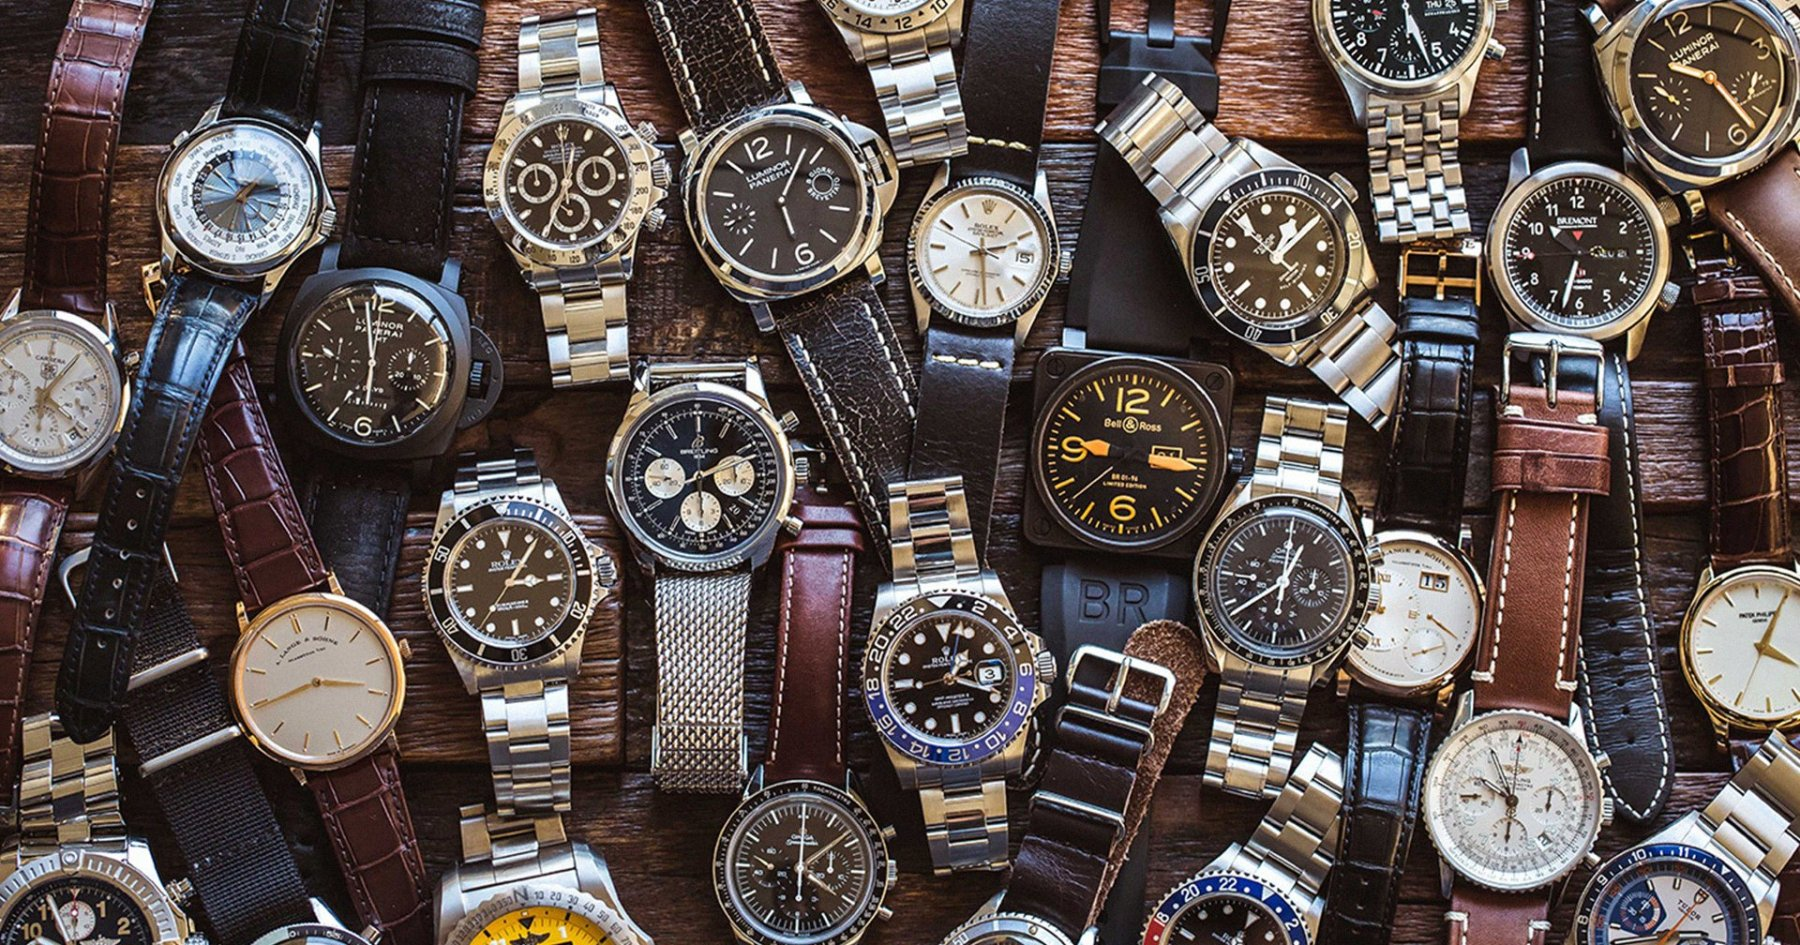 A Cheat Sheet to the 8 Most Iconic Men's Watch Brands